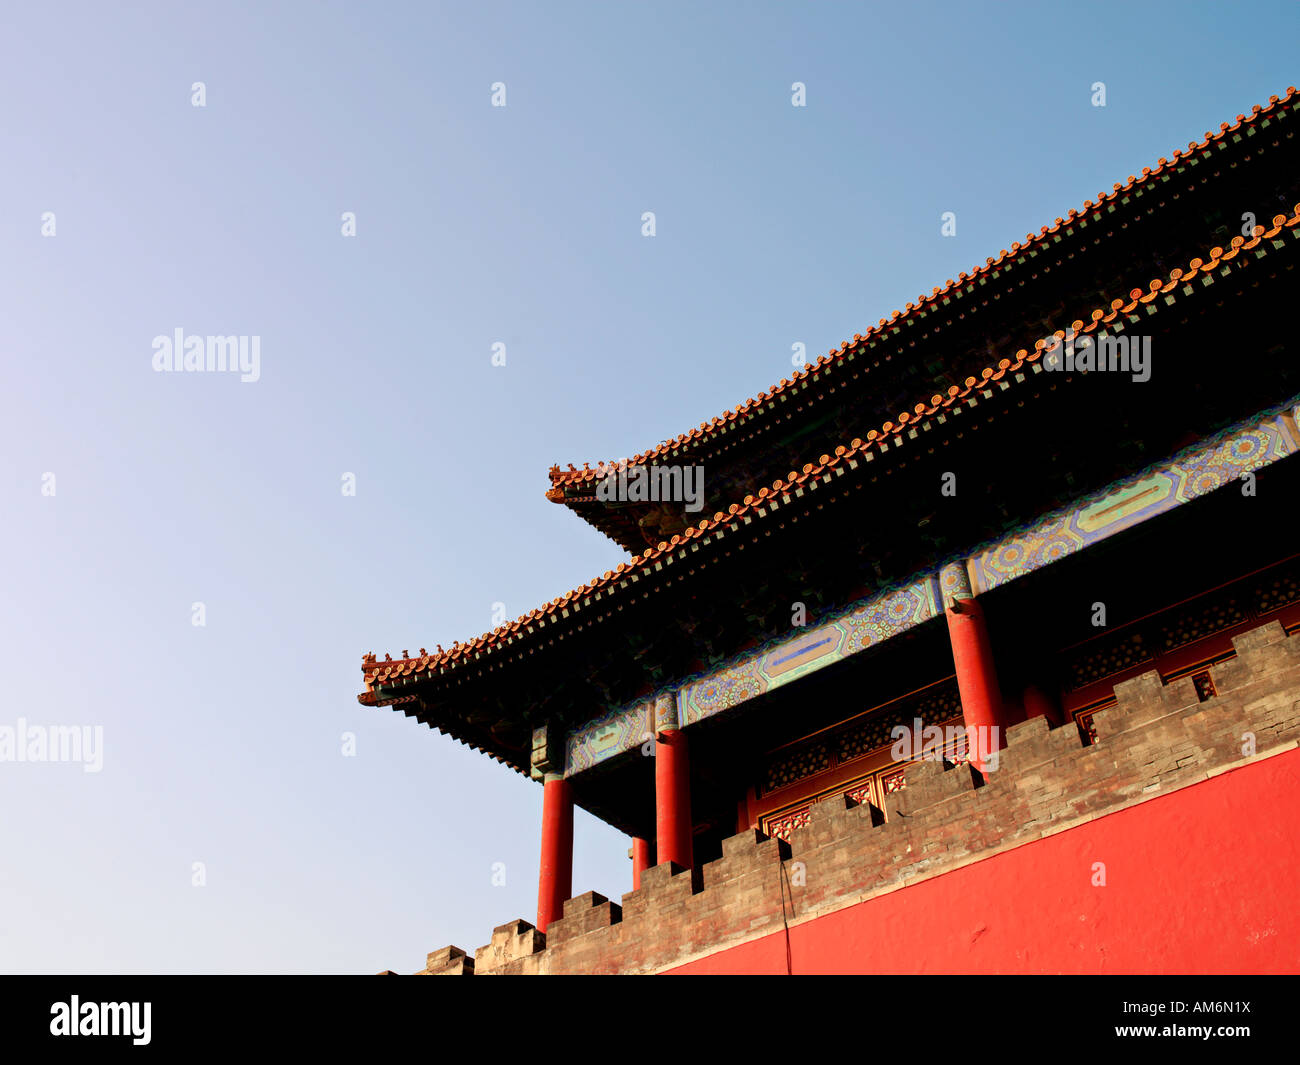 A view of the roof and upper level of the Gate of Divine Might part of the wall around the Forbidden City in Beijing, - Stock Image